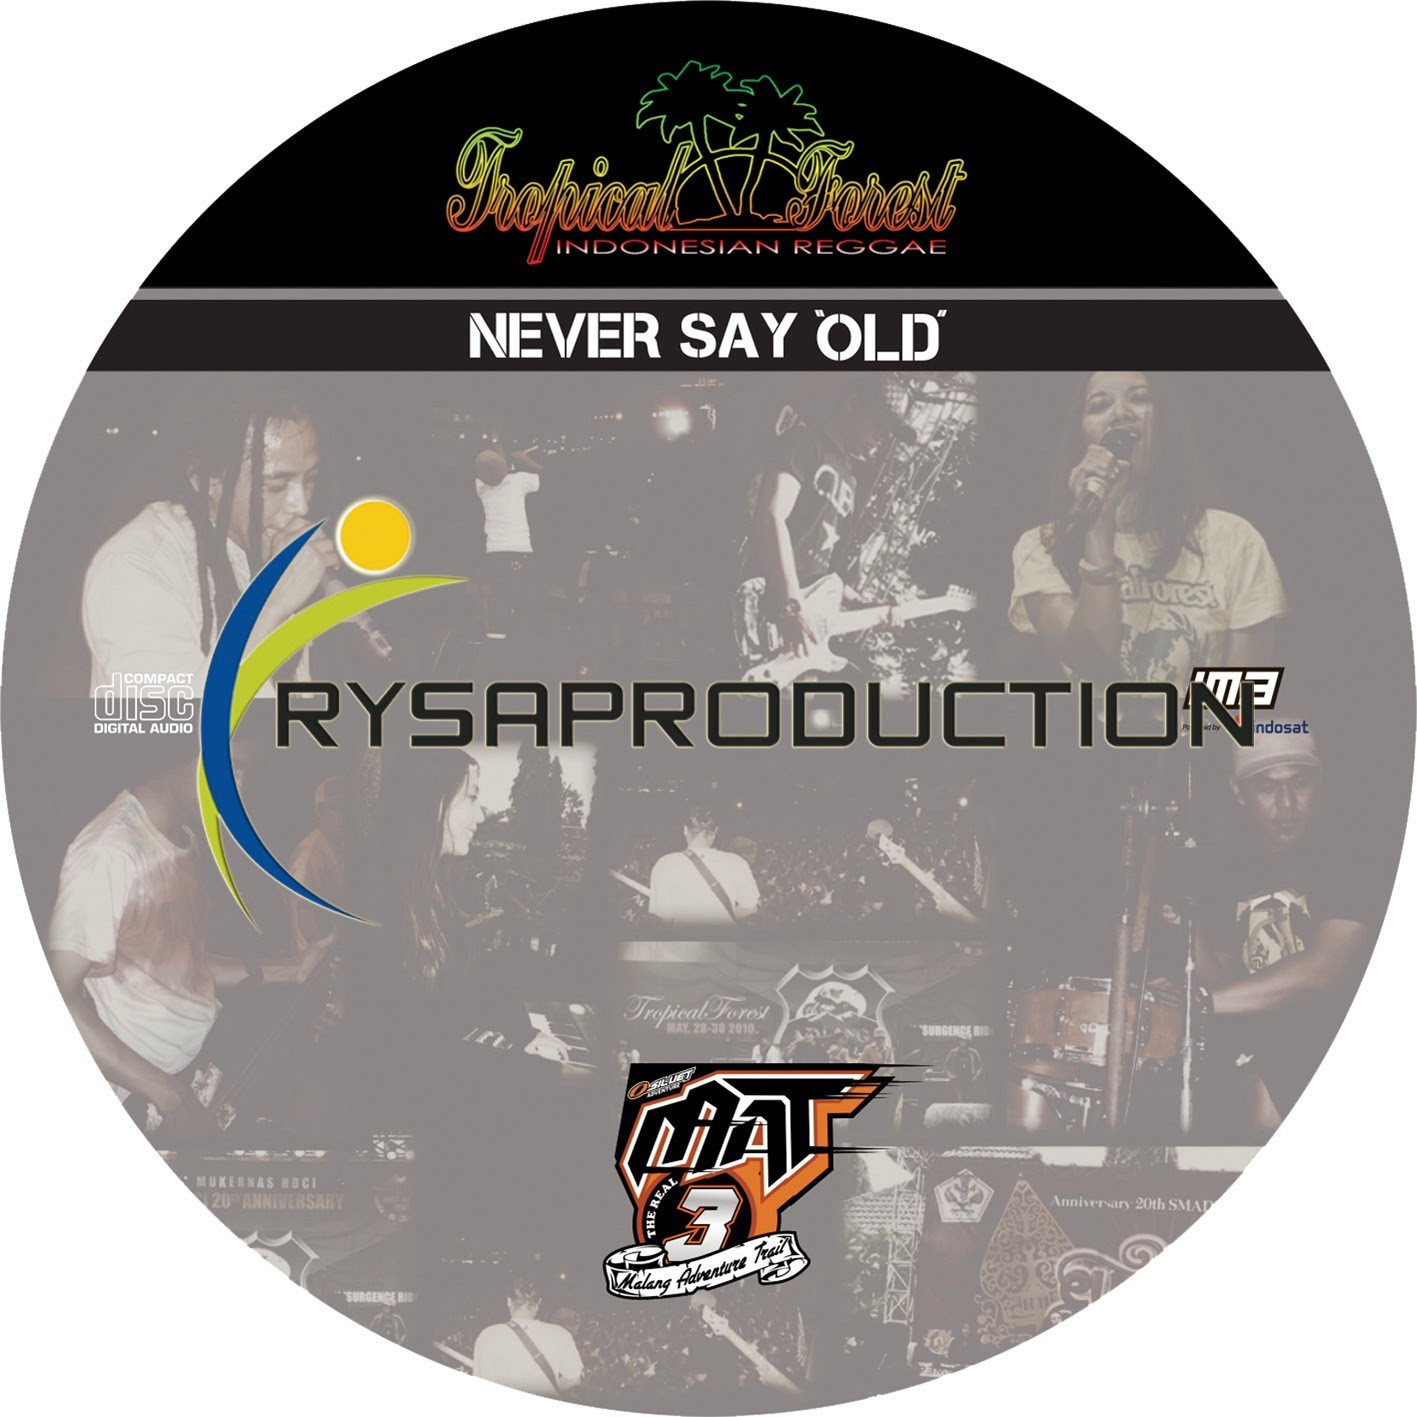 Never Say Old reggae